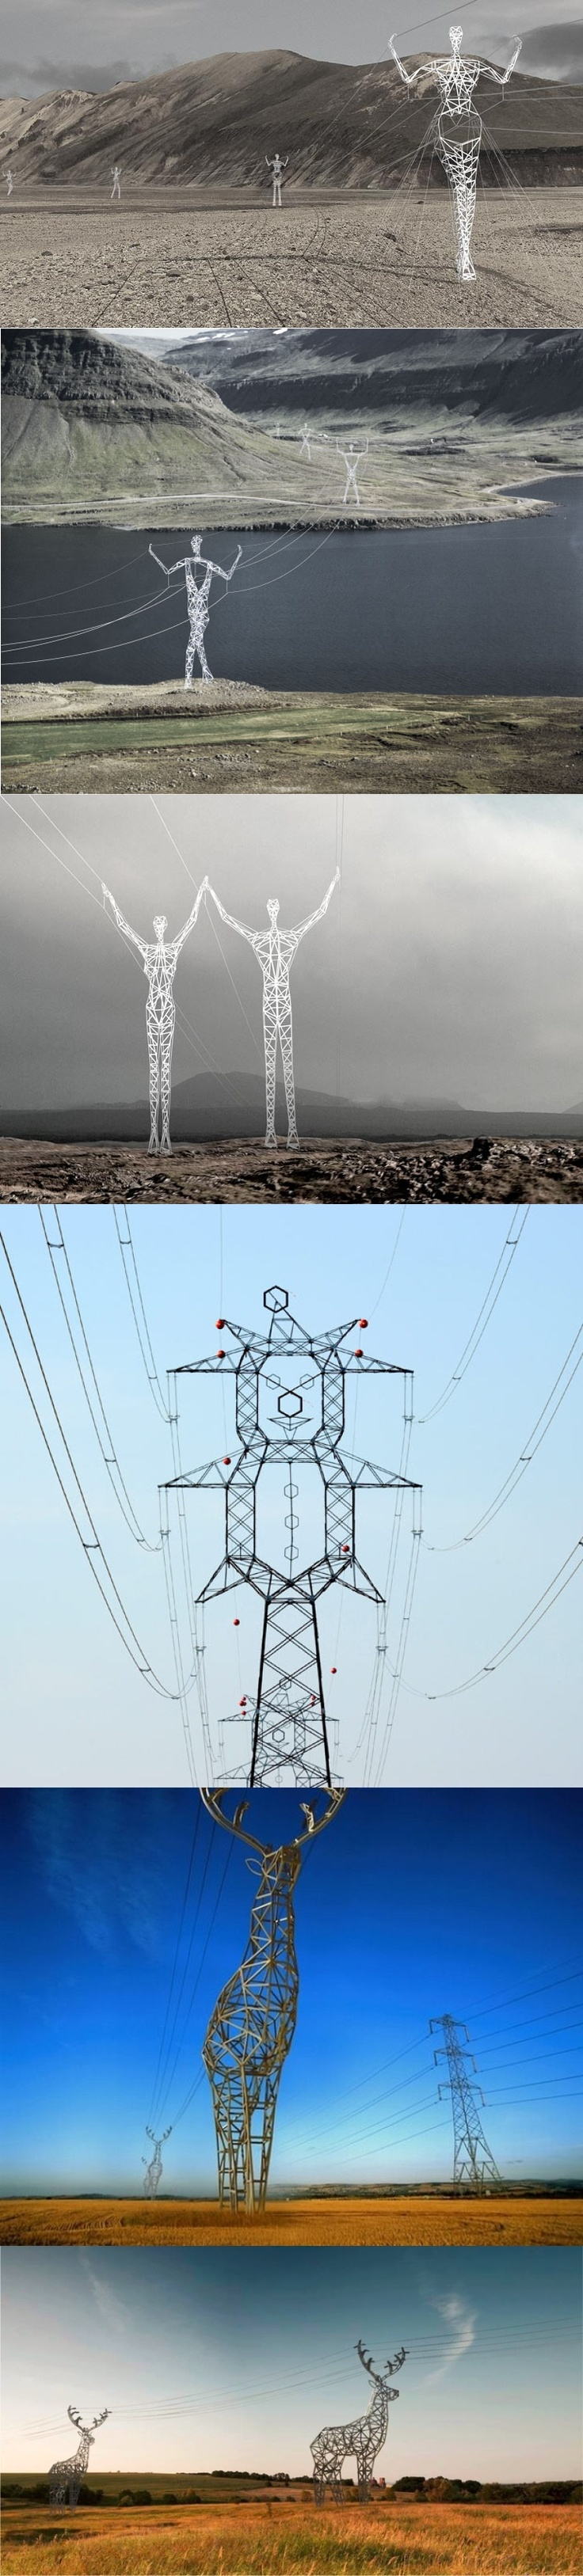 Best Transmission Towers Images On Pinterest Towers - Architects turn icelands electricity pylons into giant human statues